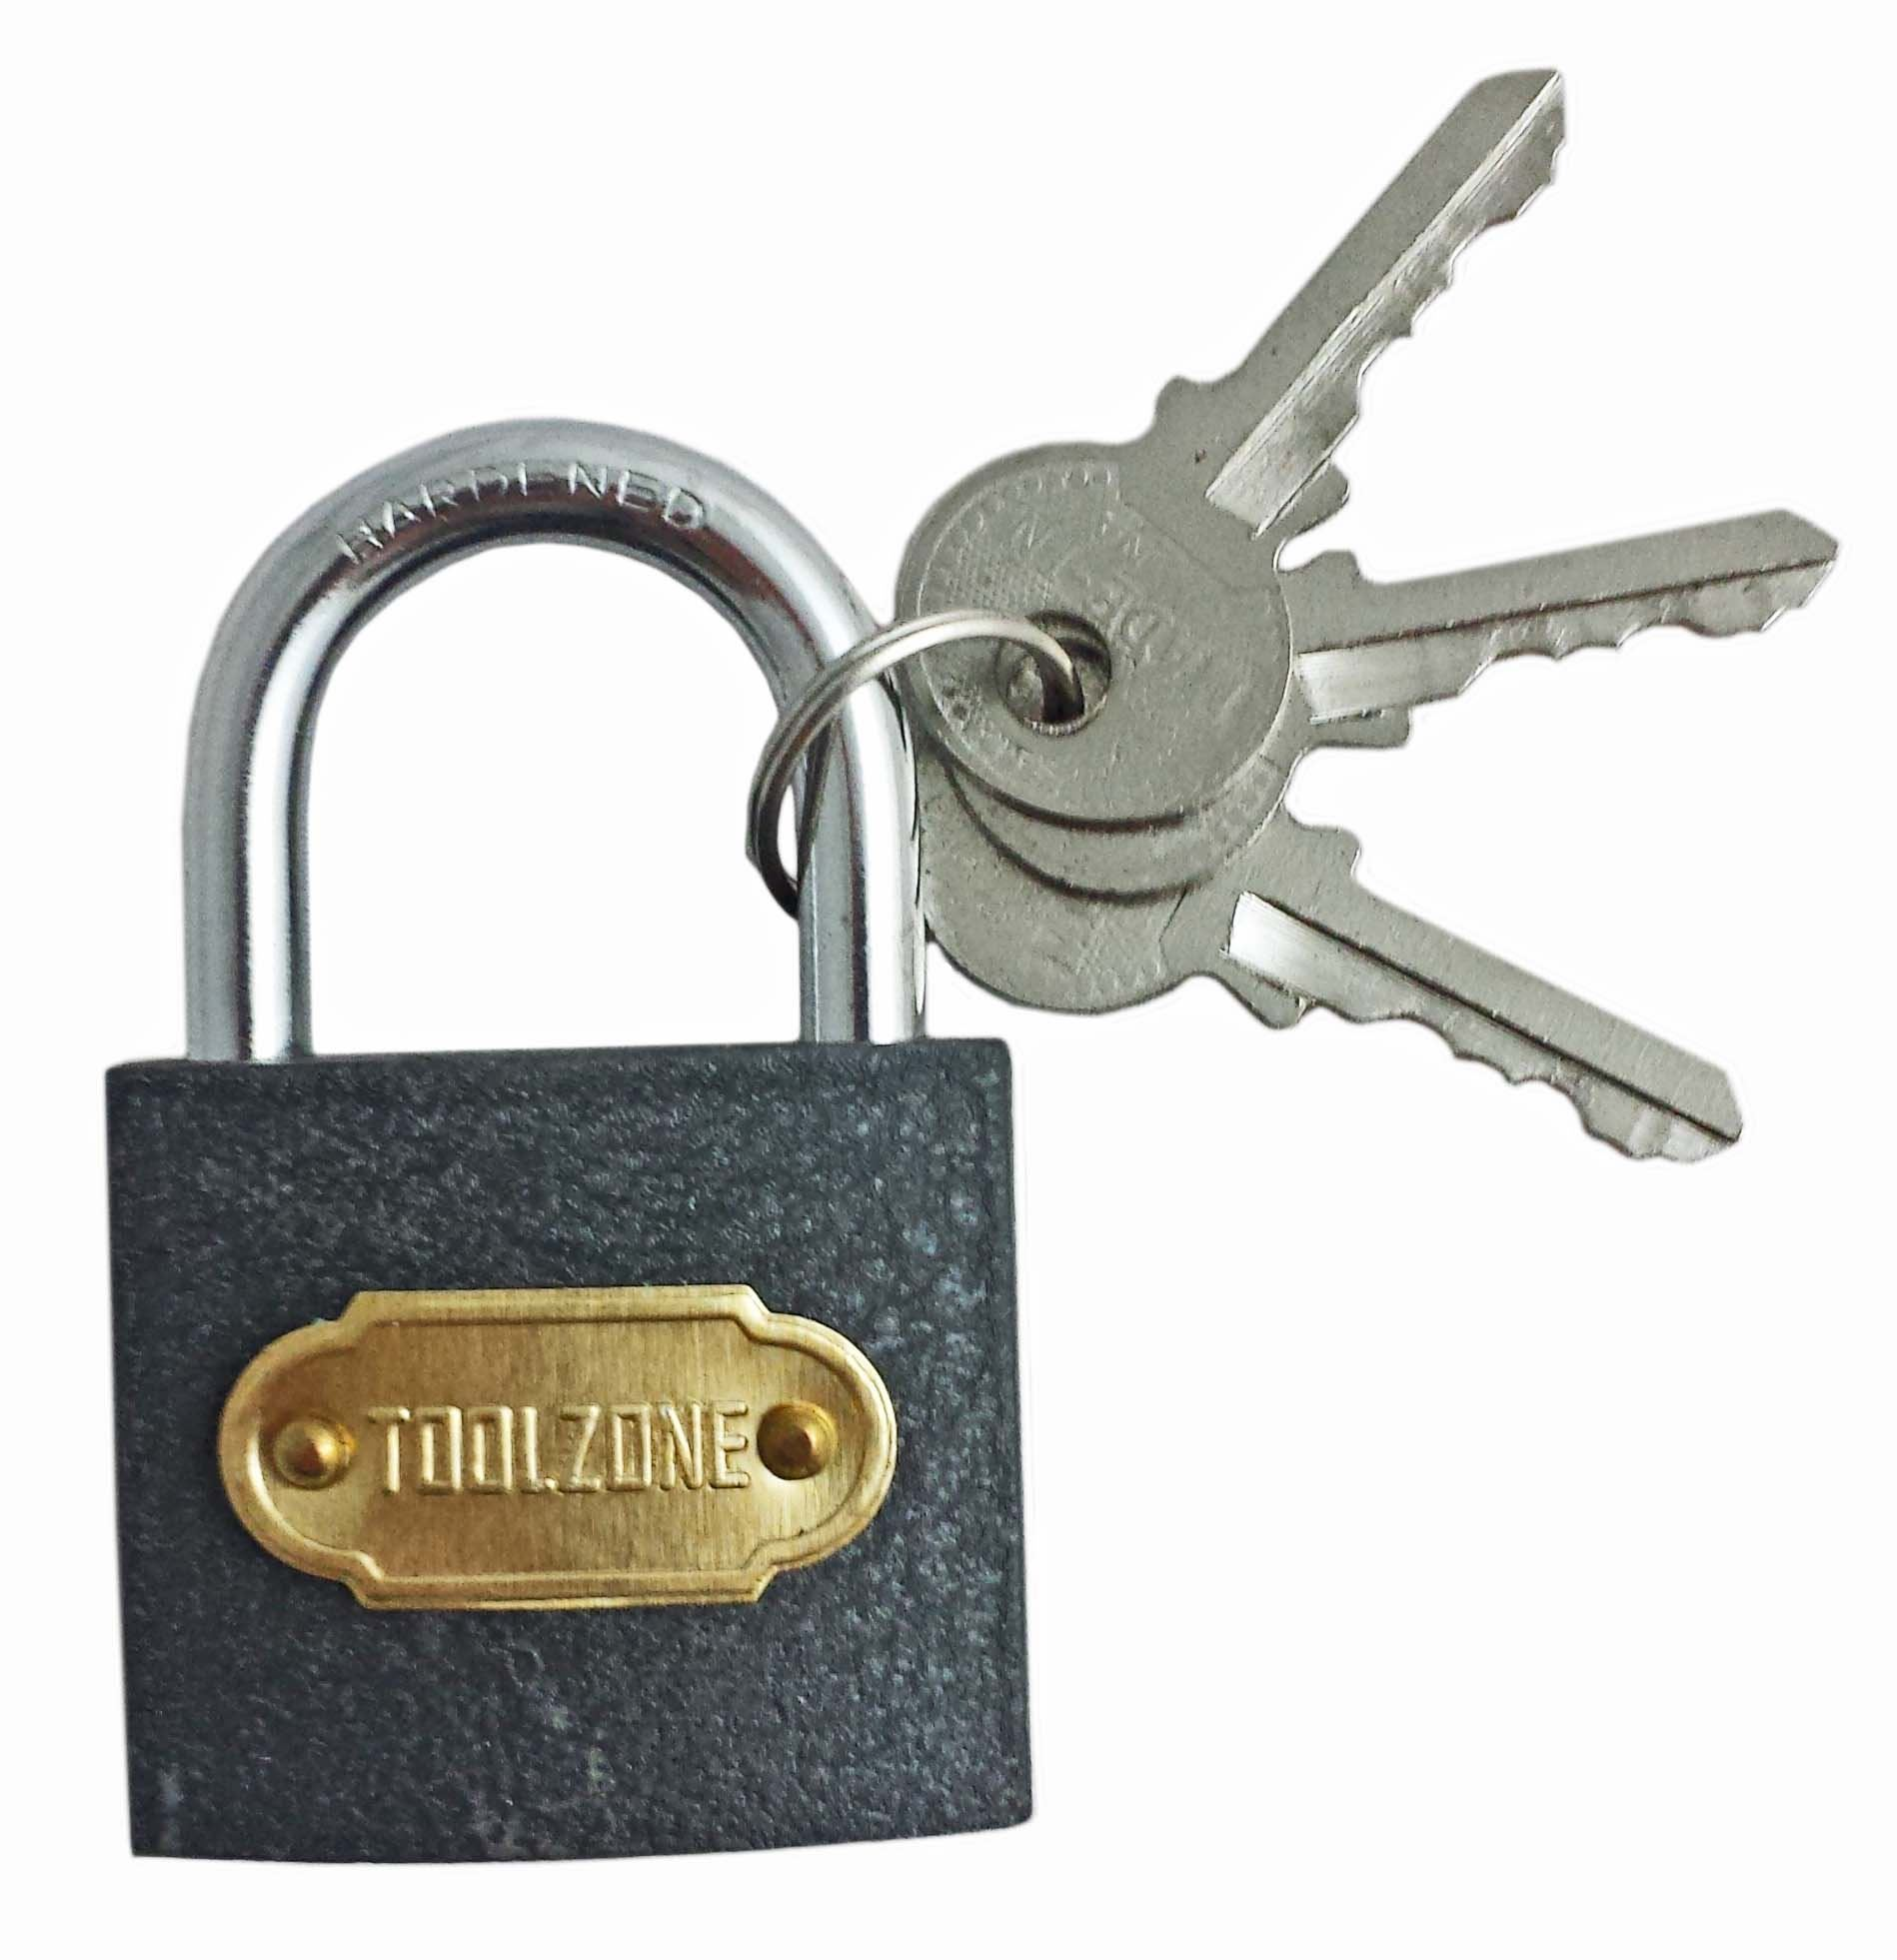 Toolzone 38Mm Cast Iron Padlock